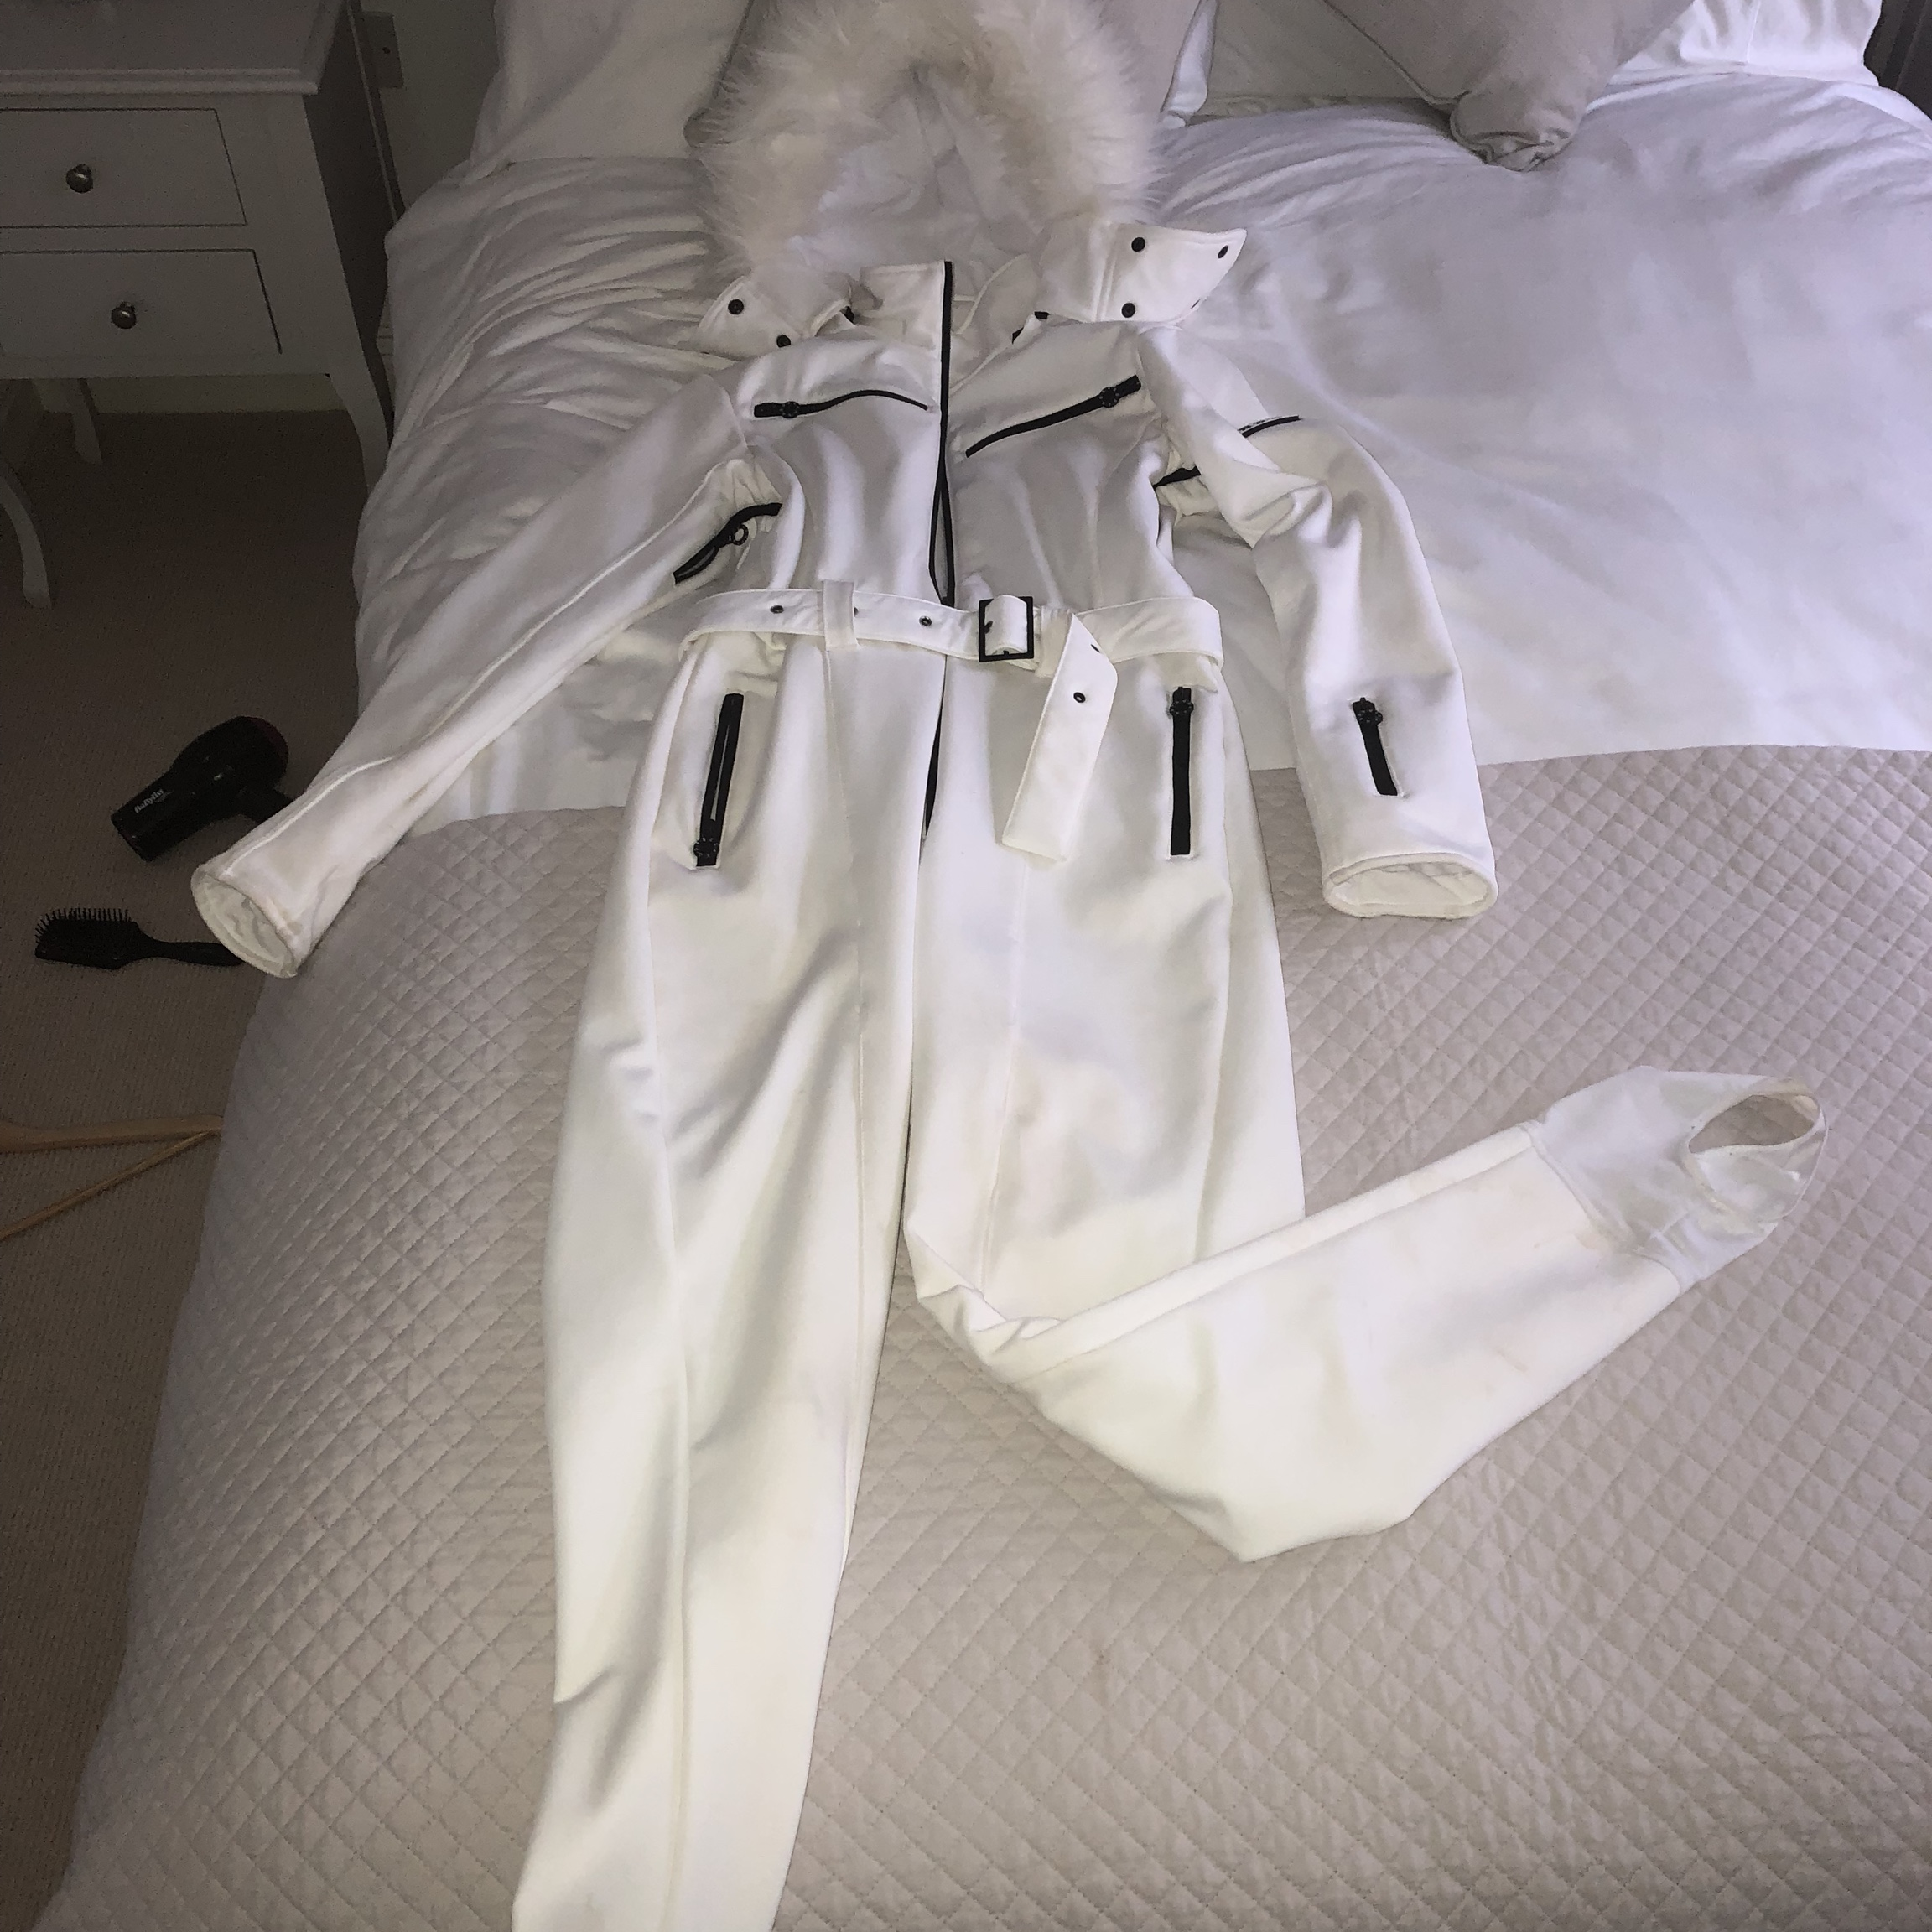 d3a14a9c565 ASOS SKI Jumpsuit in White, Size 12. In very good... - Depop